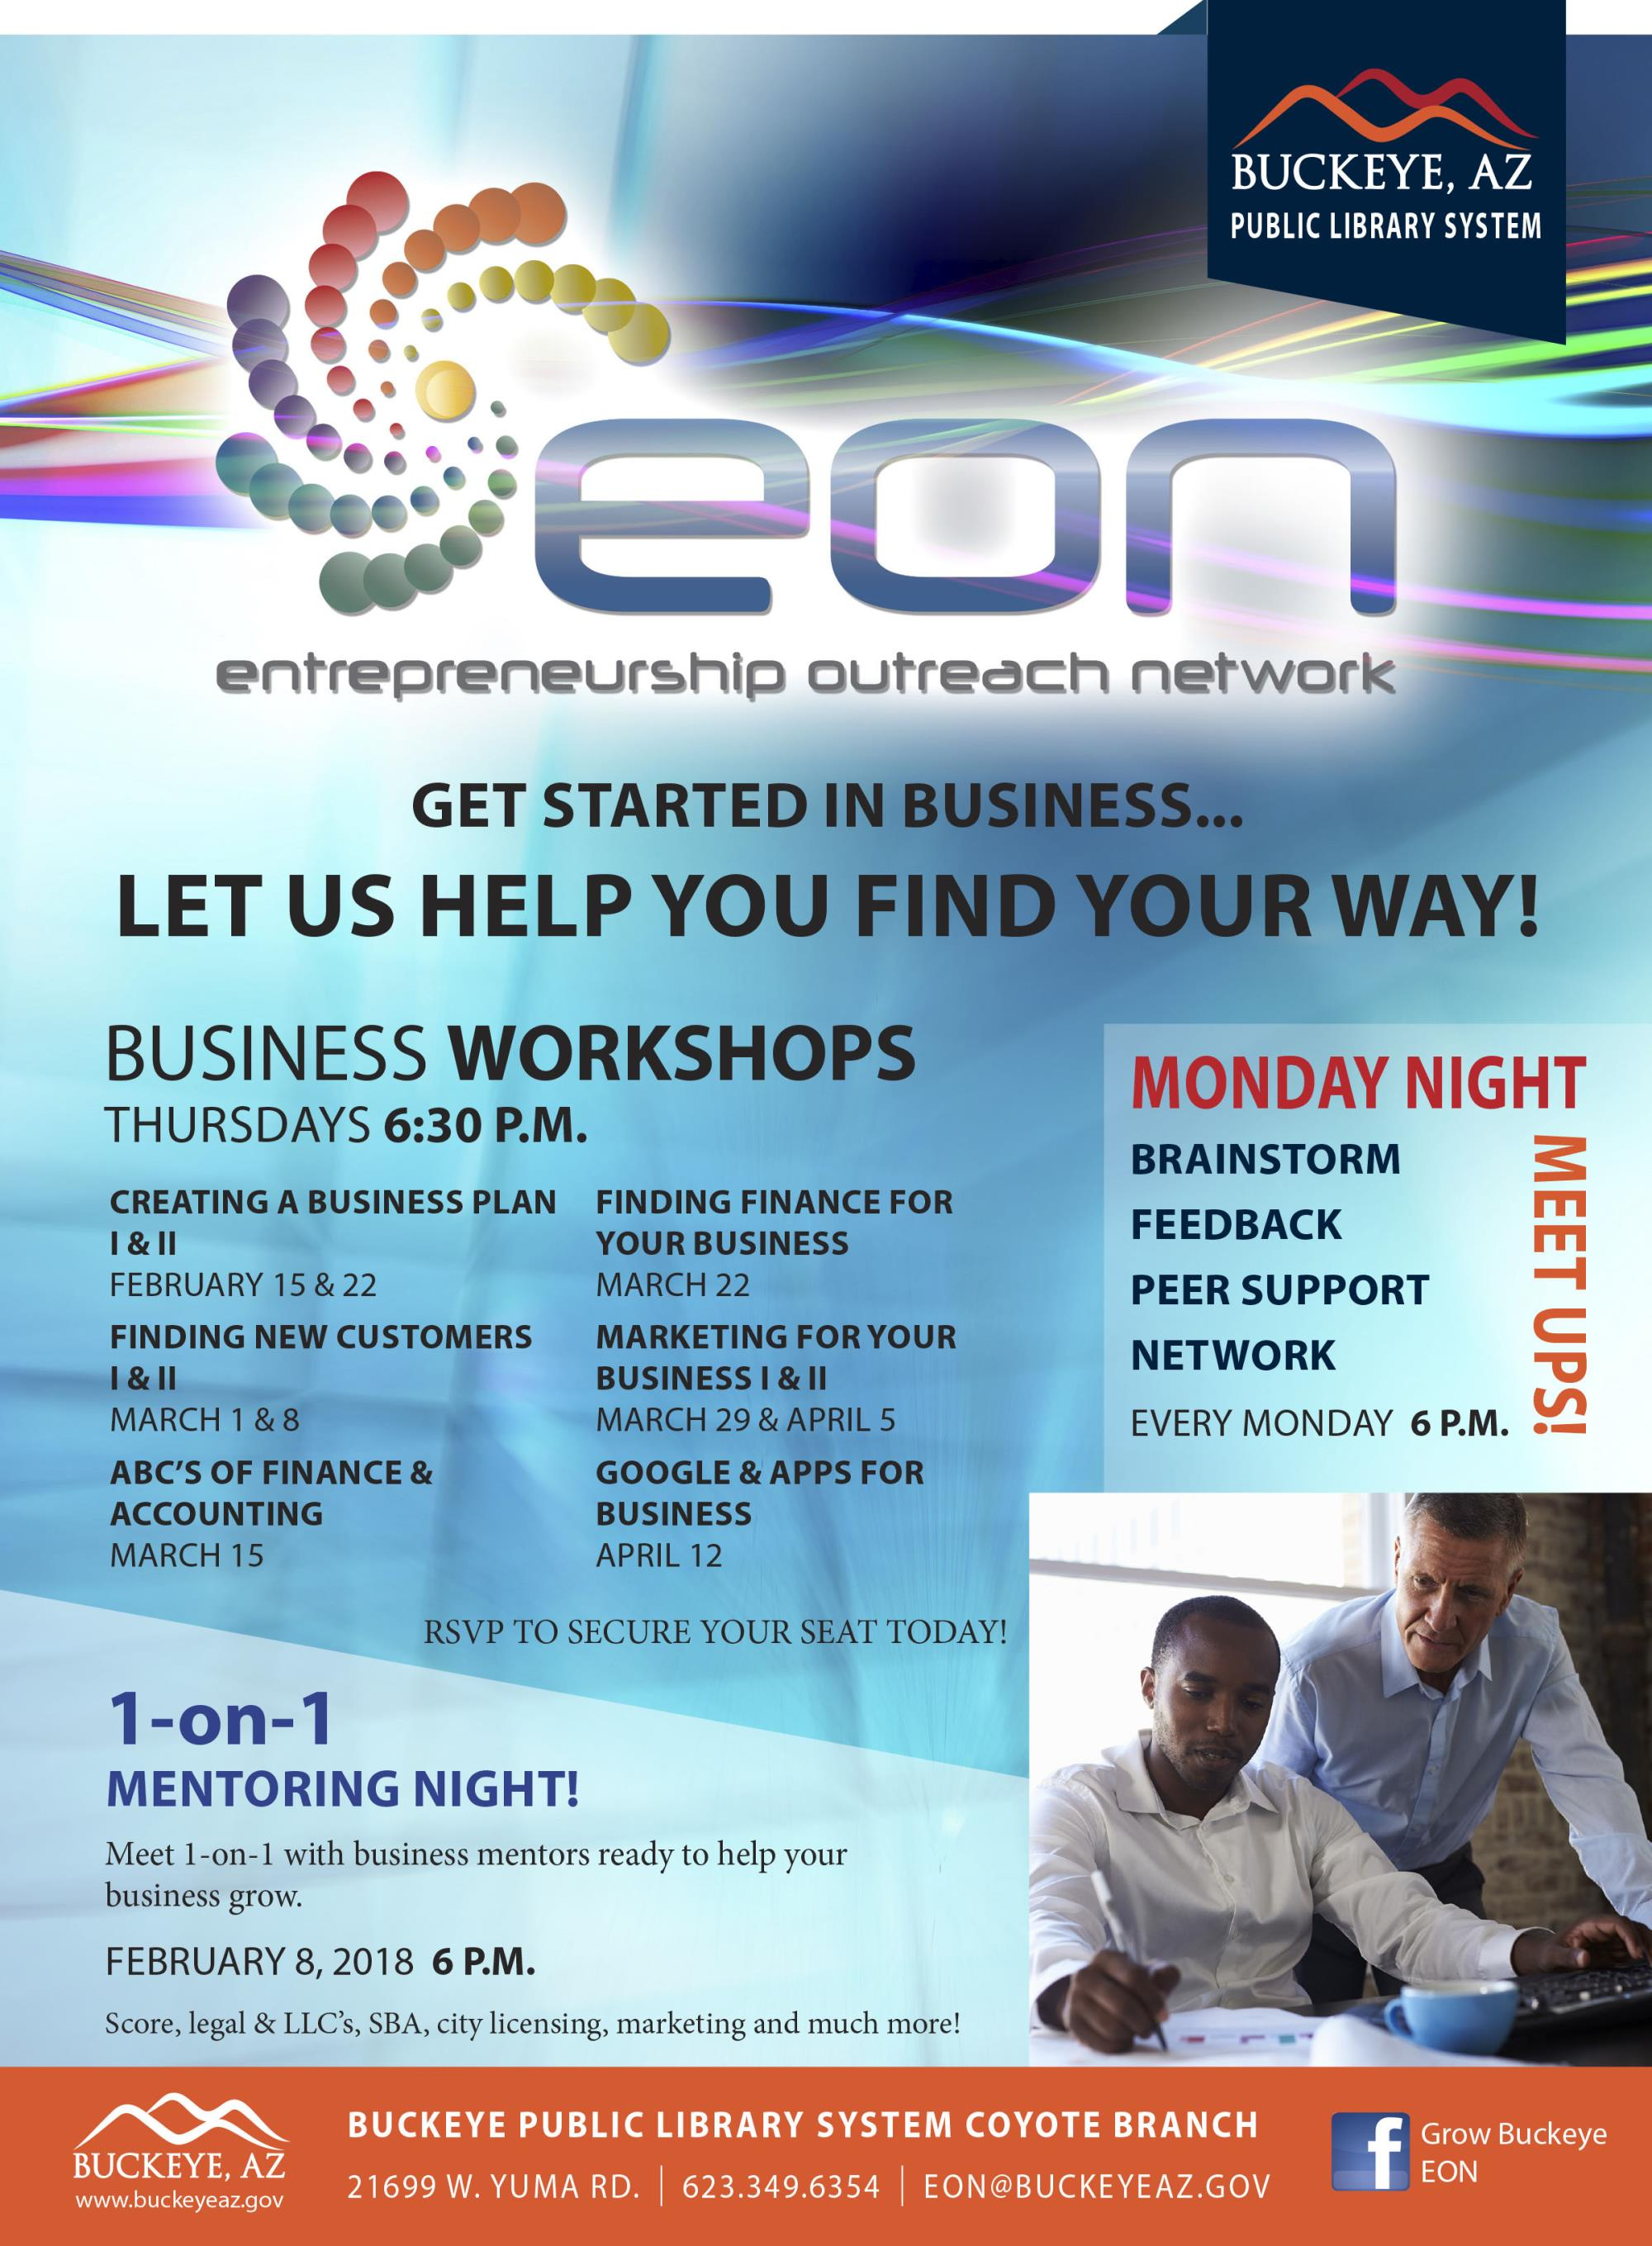 EON Business Workshop - Finding Finance For Your Business | Calendar